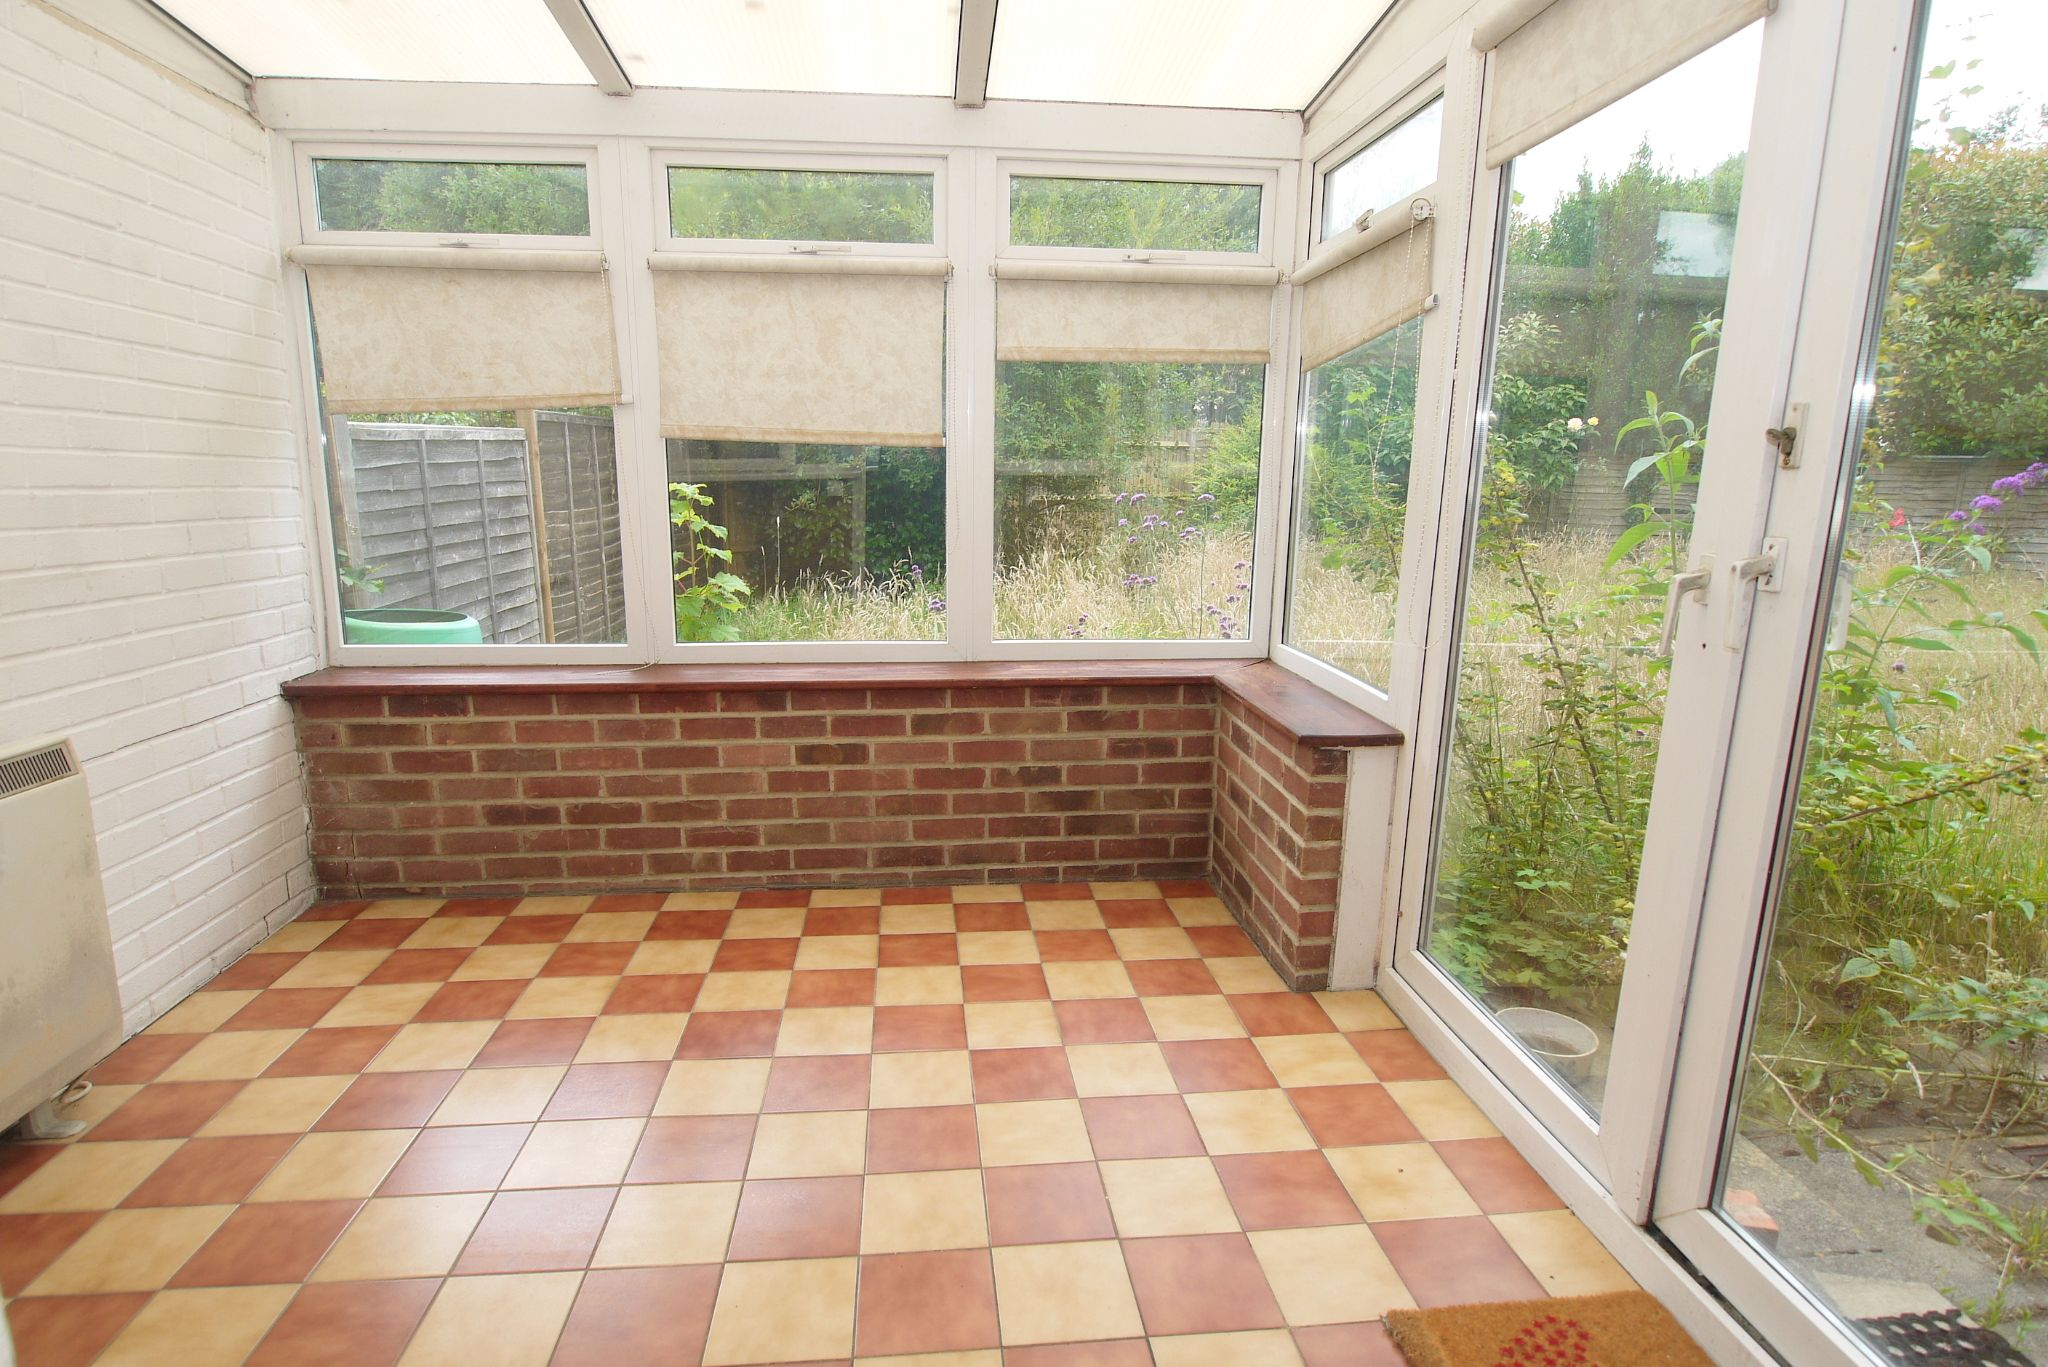 5 bedroom semi-detached house For Sale in Sevenoaks - Photograph 5